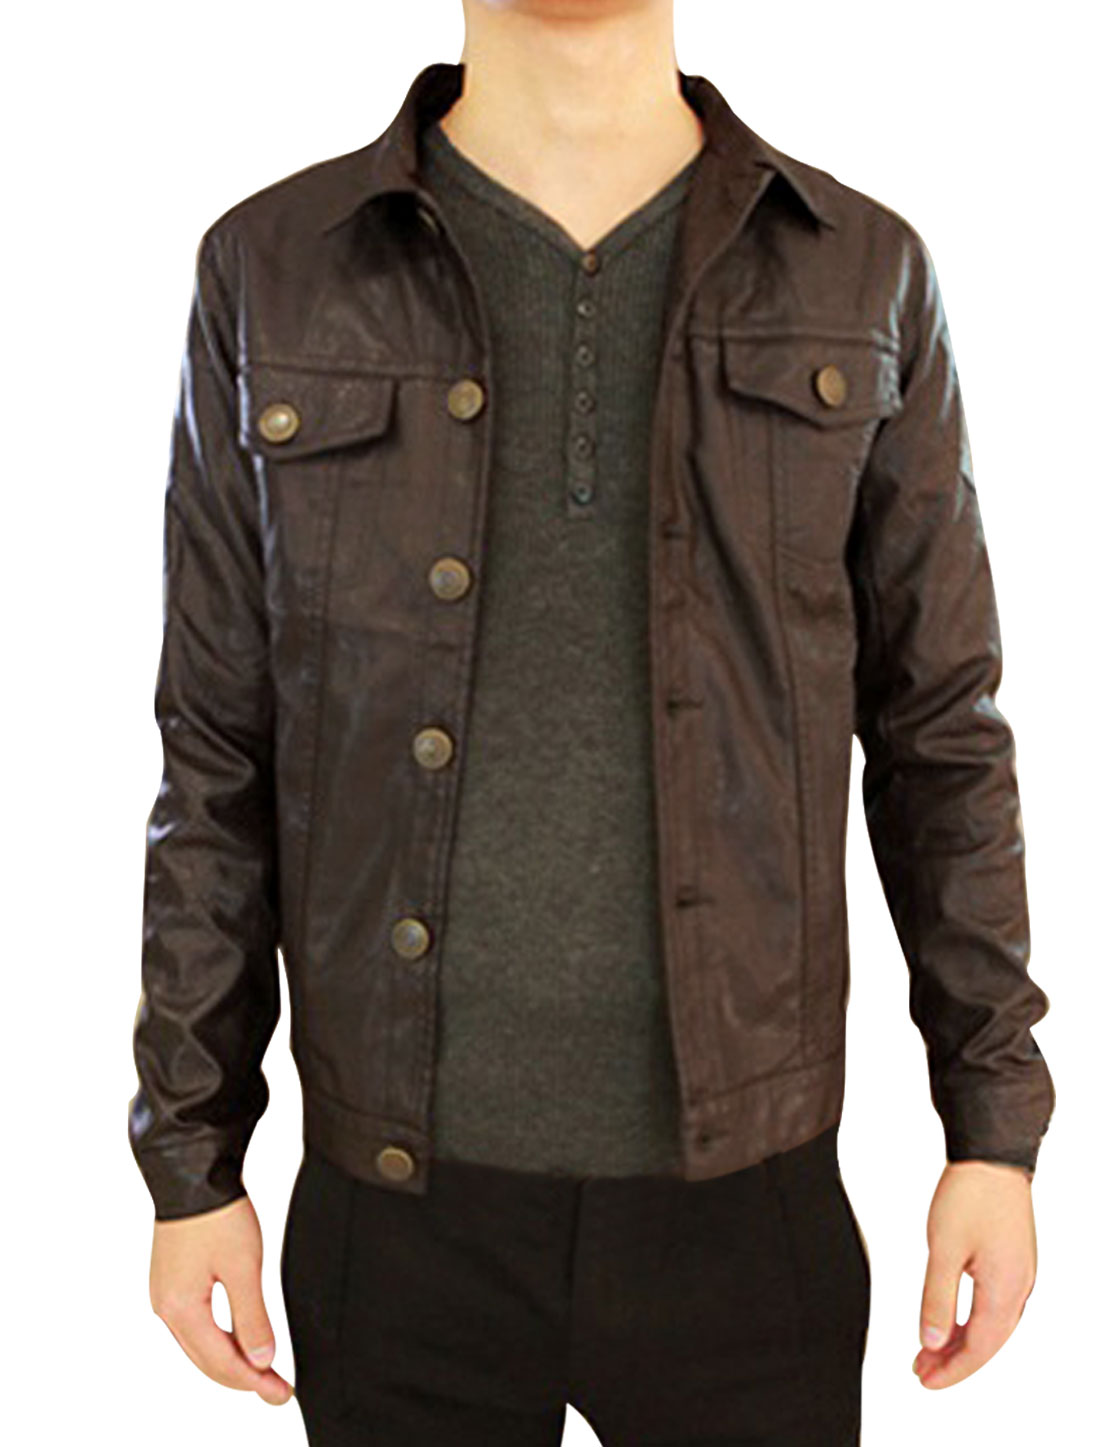 Coffee Turn Down Collar Button-up Cuff Man Imitation Leather Jacket S